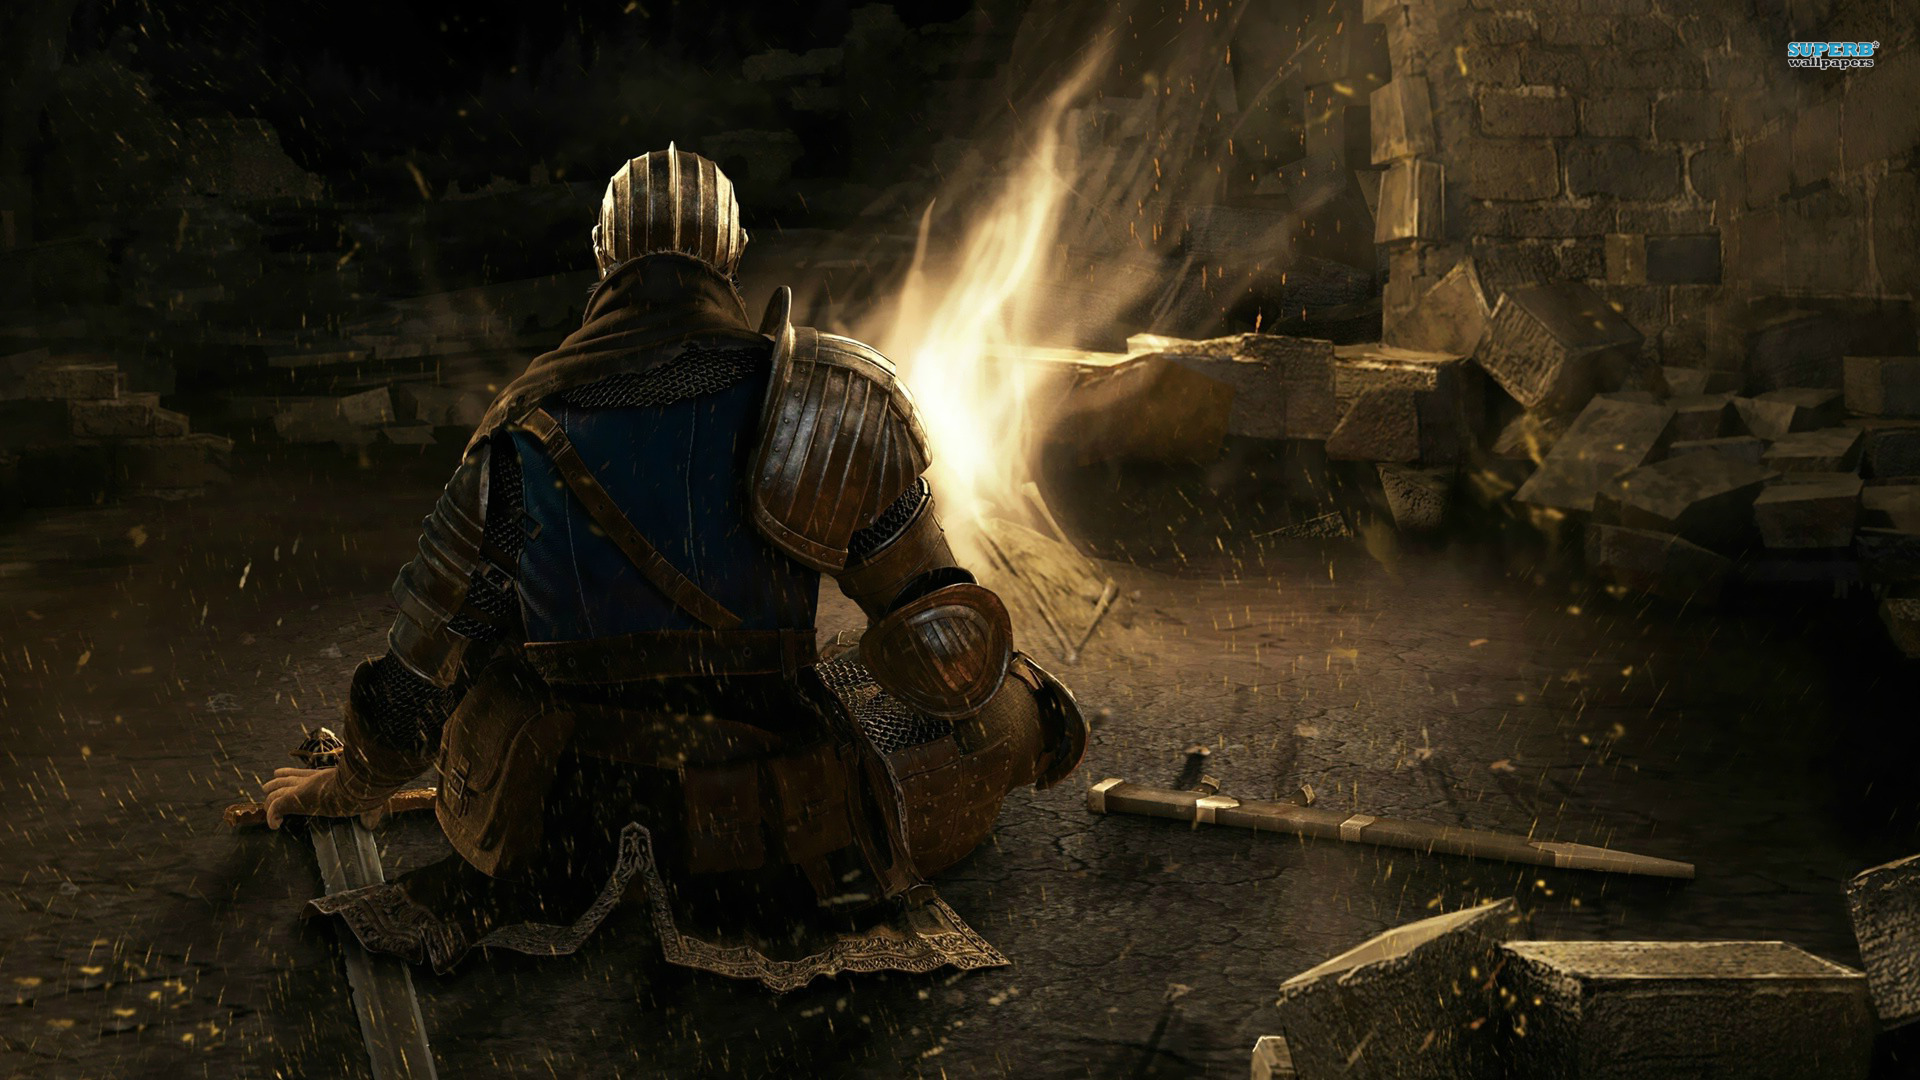 Dark Souls wallpaper 1920x1080 jpg